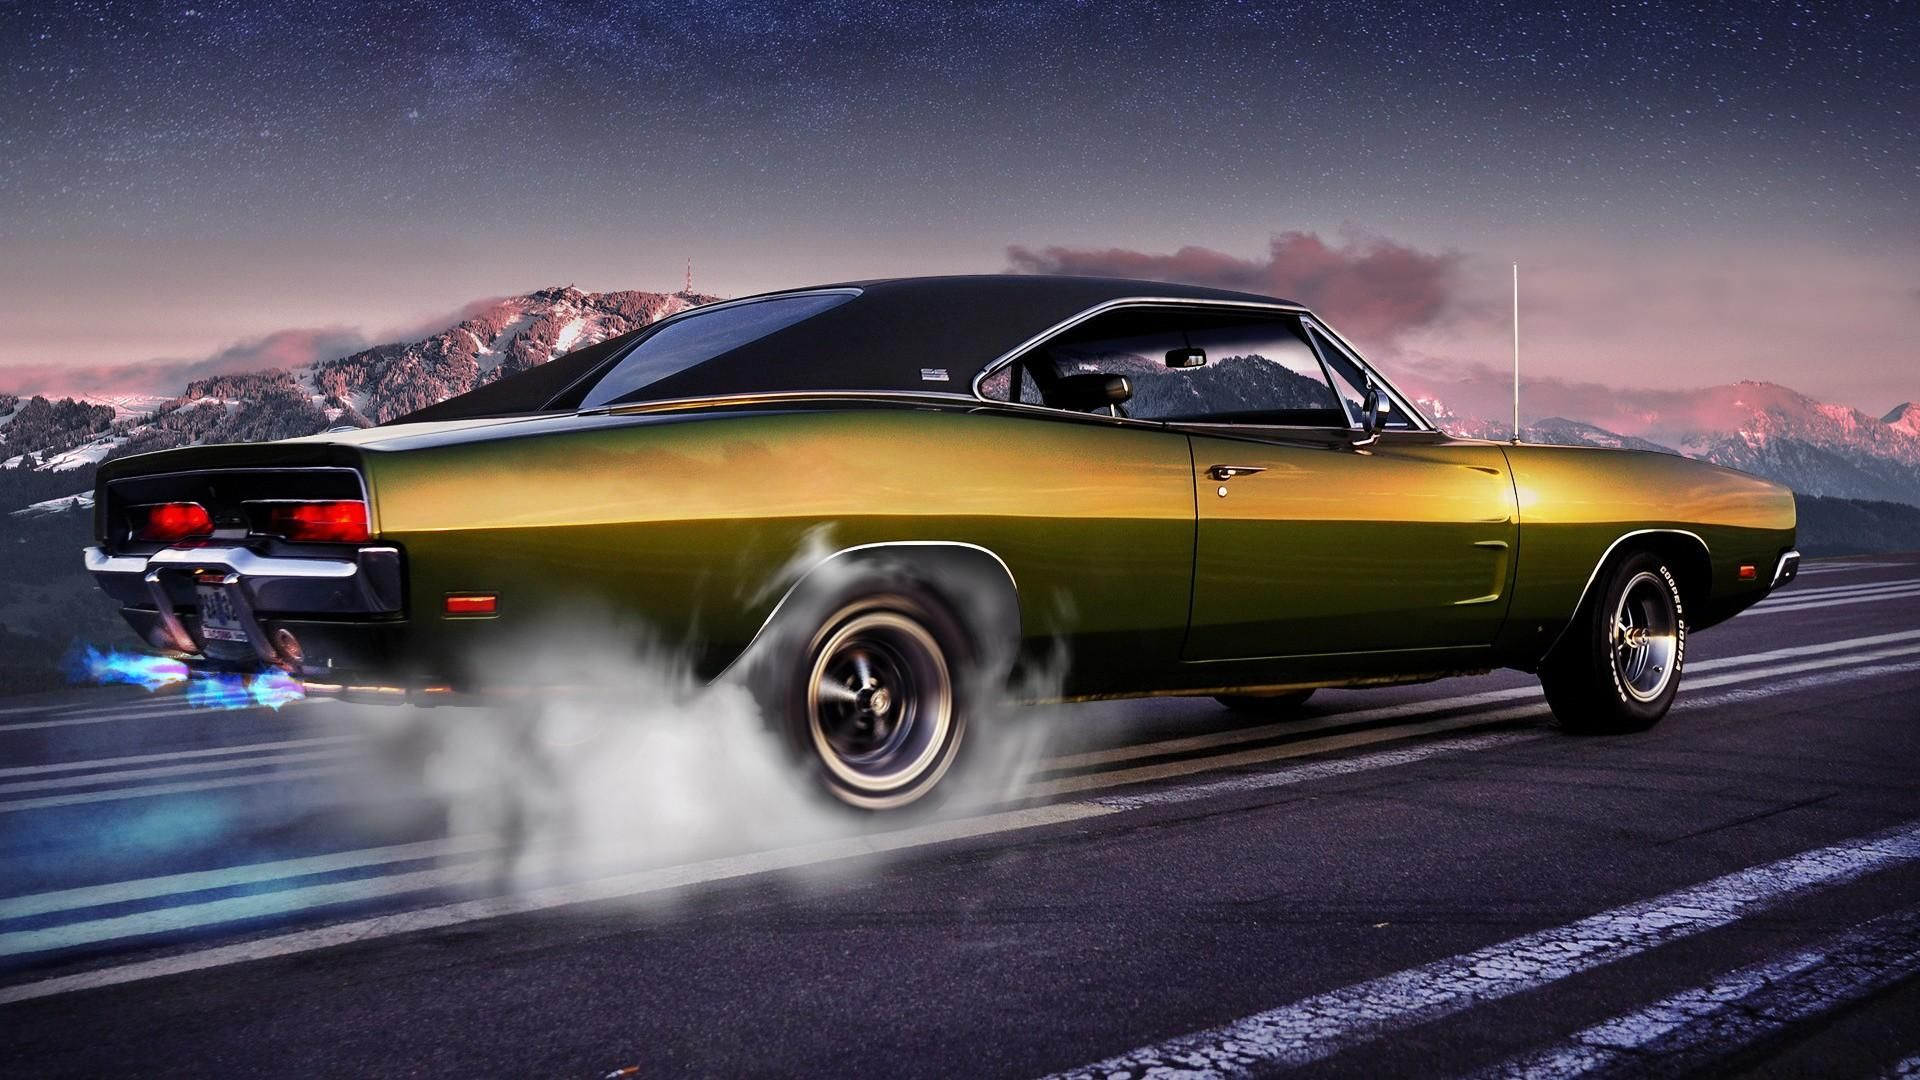 Muscle Cars Wallpaper Wide Bqo With Images Old Muscle Cars